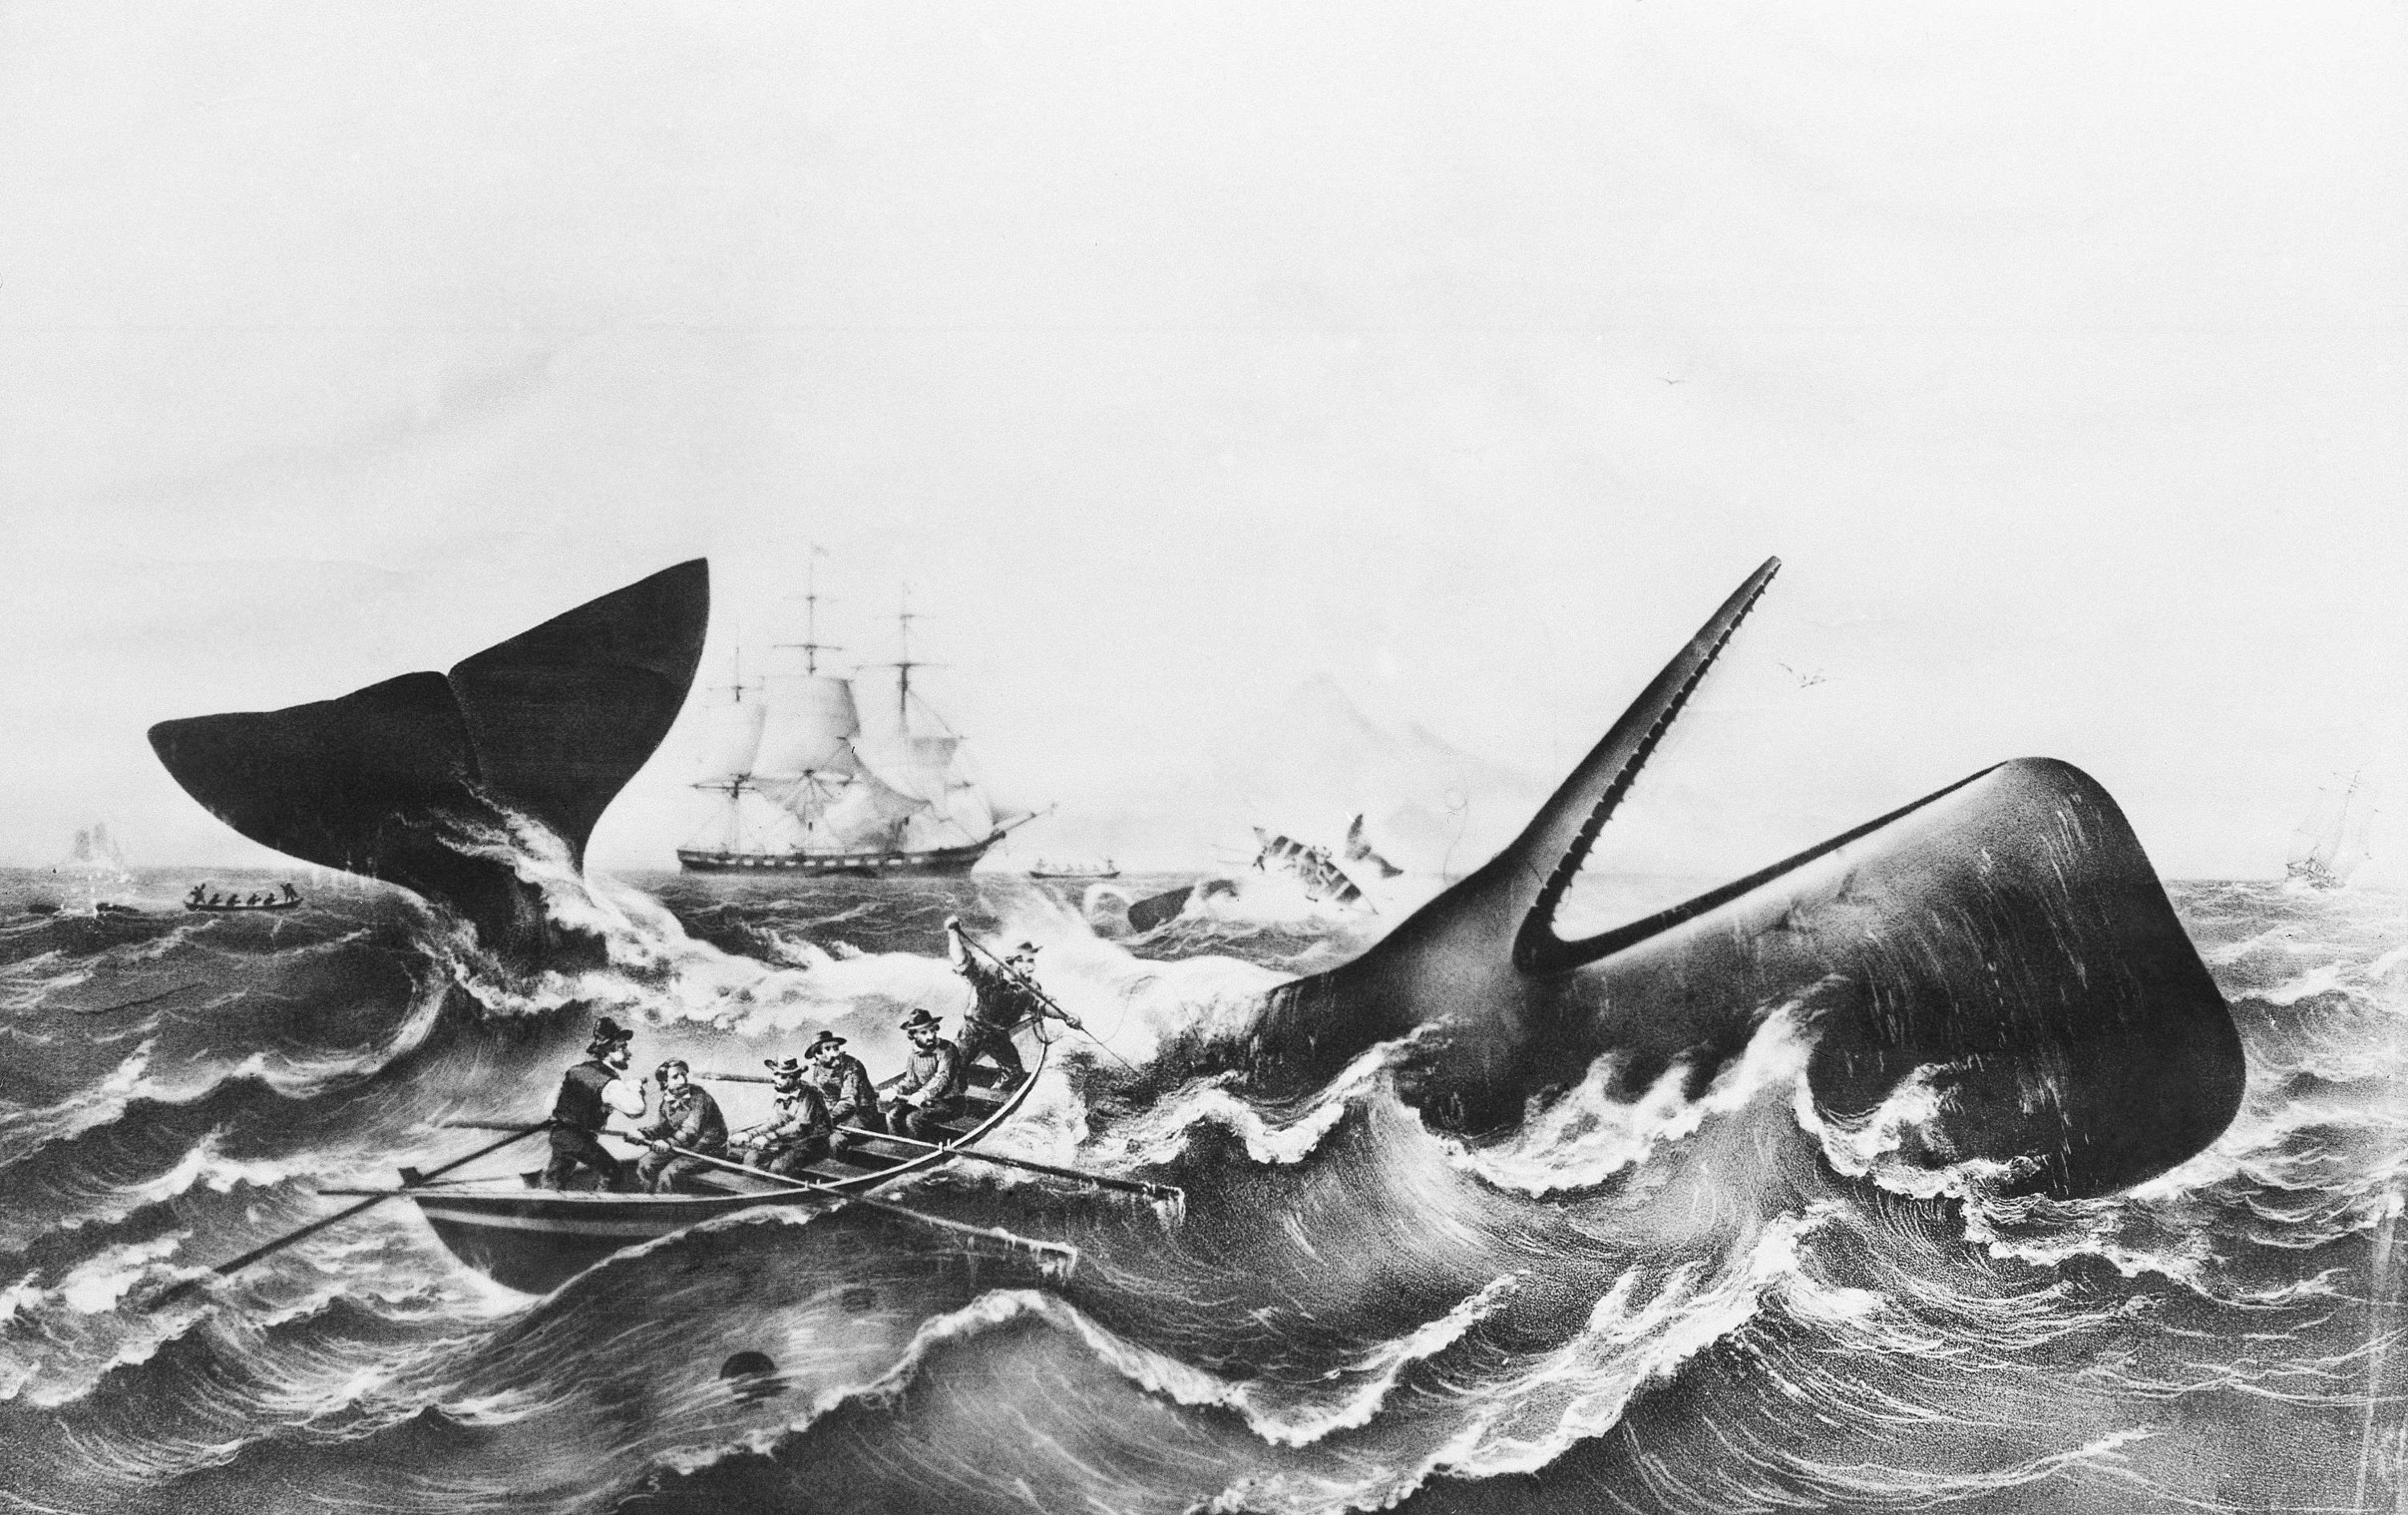 A famous old whaling print, circa 1850, showing mate attempting to lance and kill a threashing sperm whale. In background other whales toss frail lifeboats into the air. The whale is on his back, showing distinctive square shape of the sperm. This copied from files of the old Dartmouth Historical Society and Whaling Museum, Johnnycake Hill, New Bedford, Massachusetts. (AP Photo)